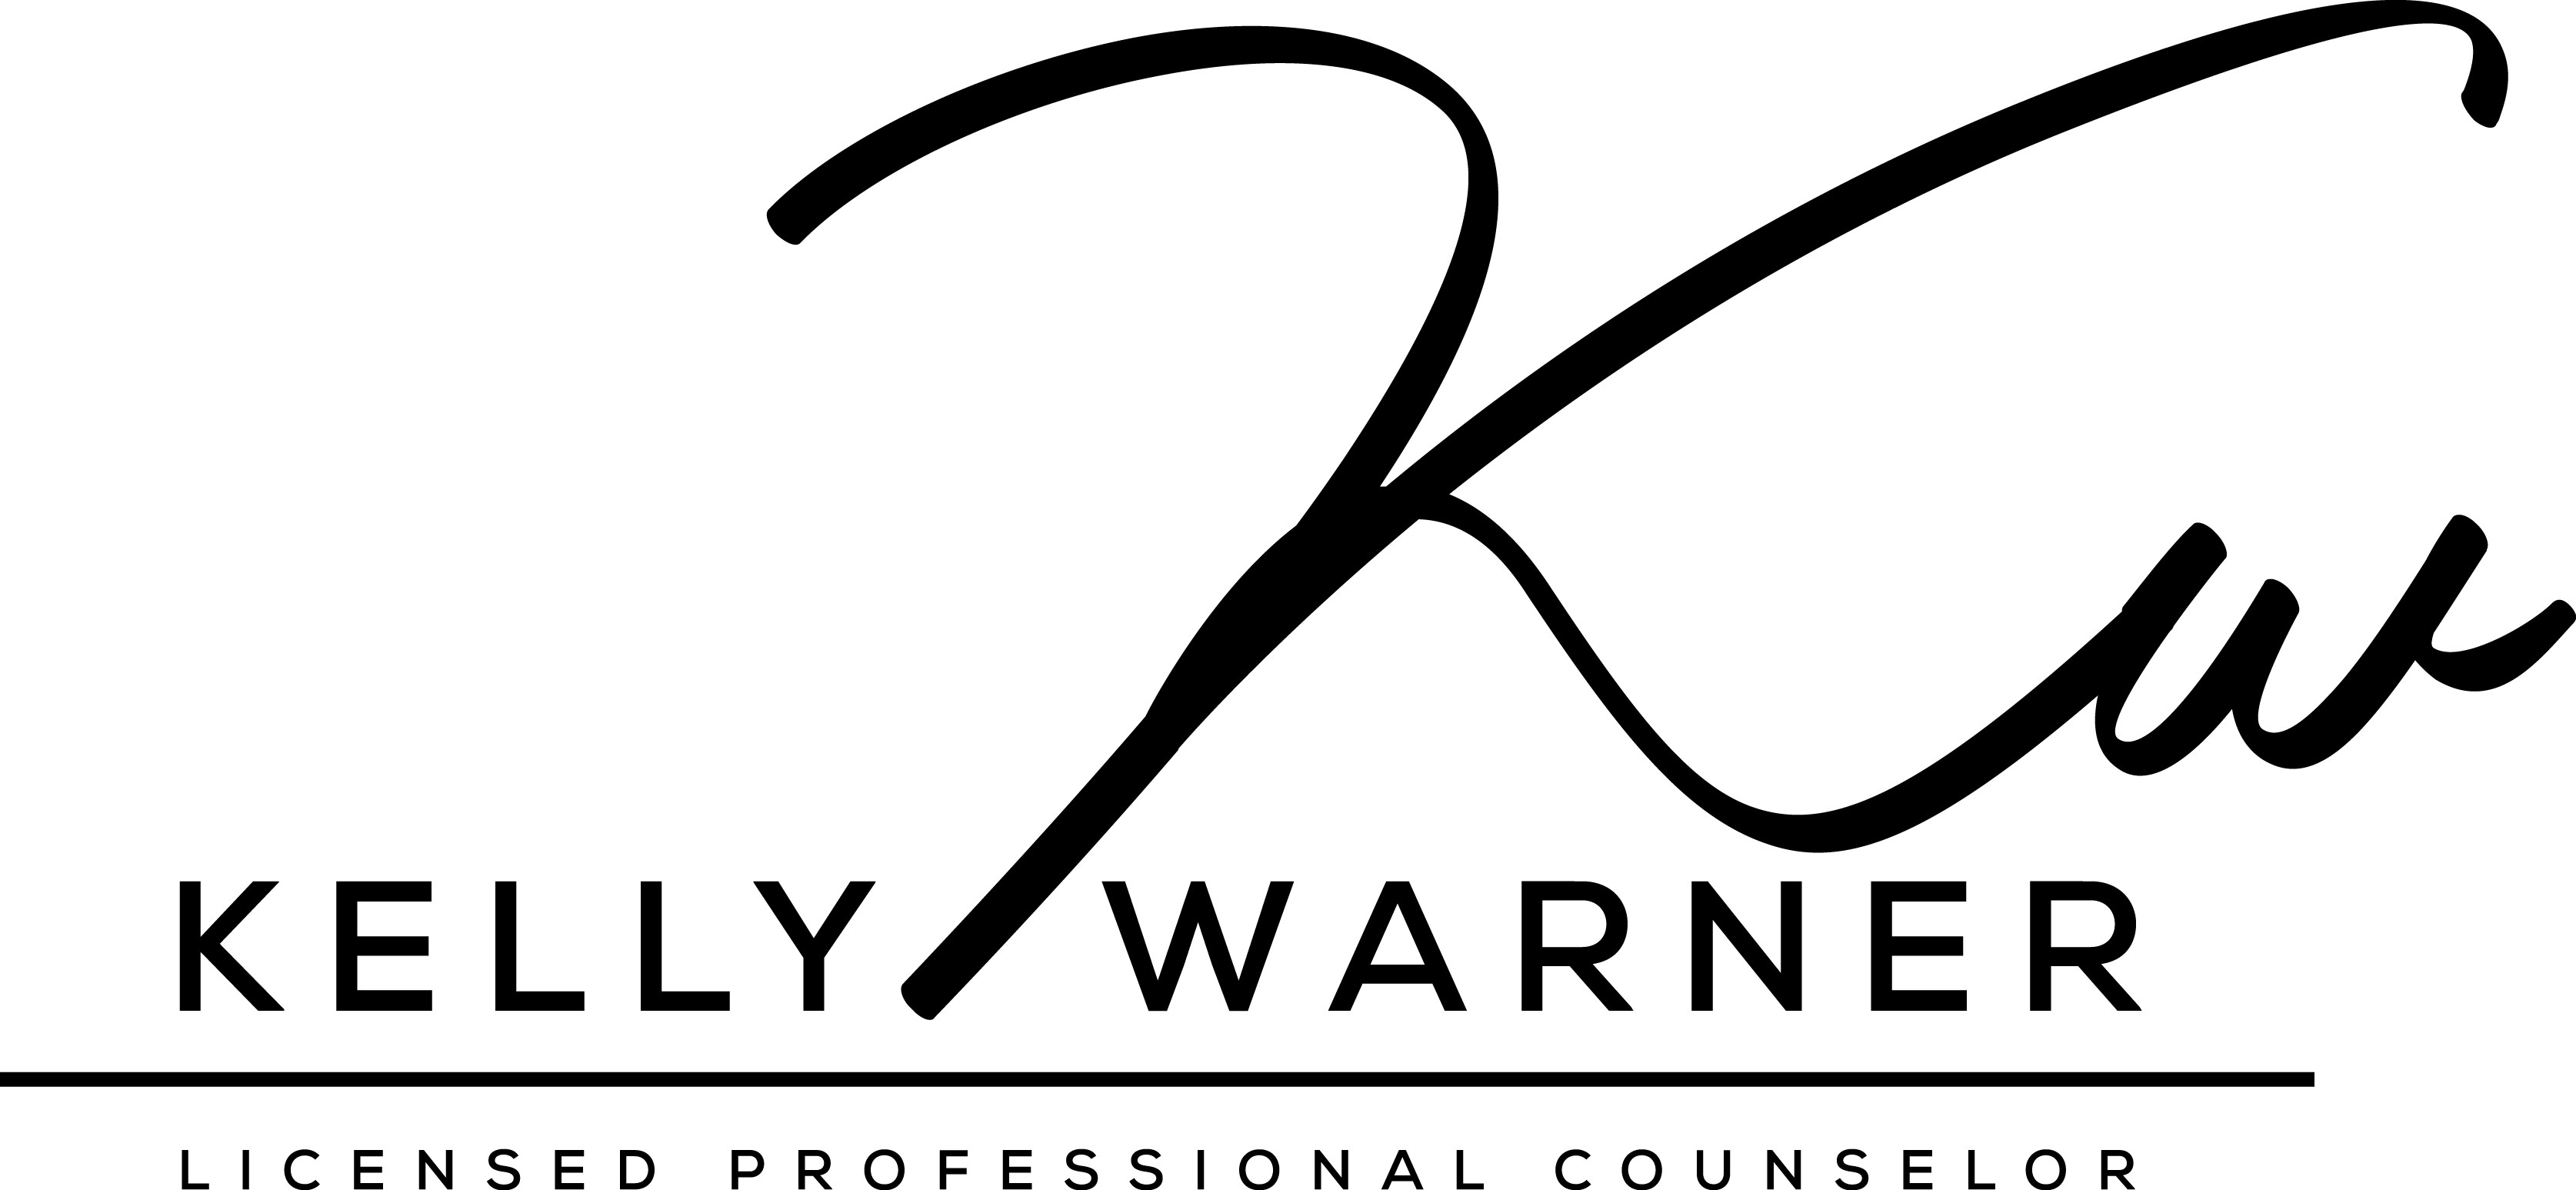 Addiction and Anxiety therapist looking for a logo and social media design for private practice